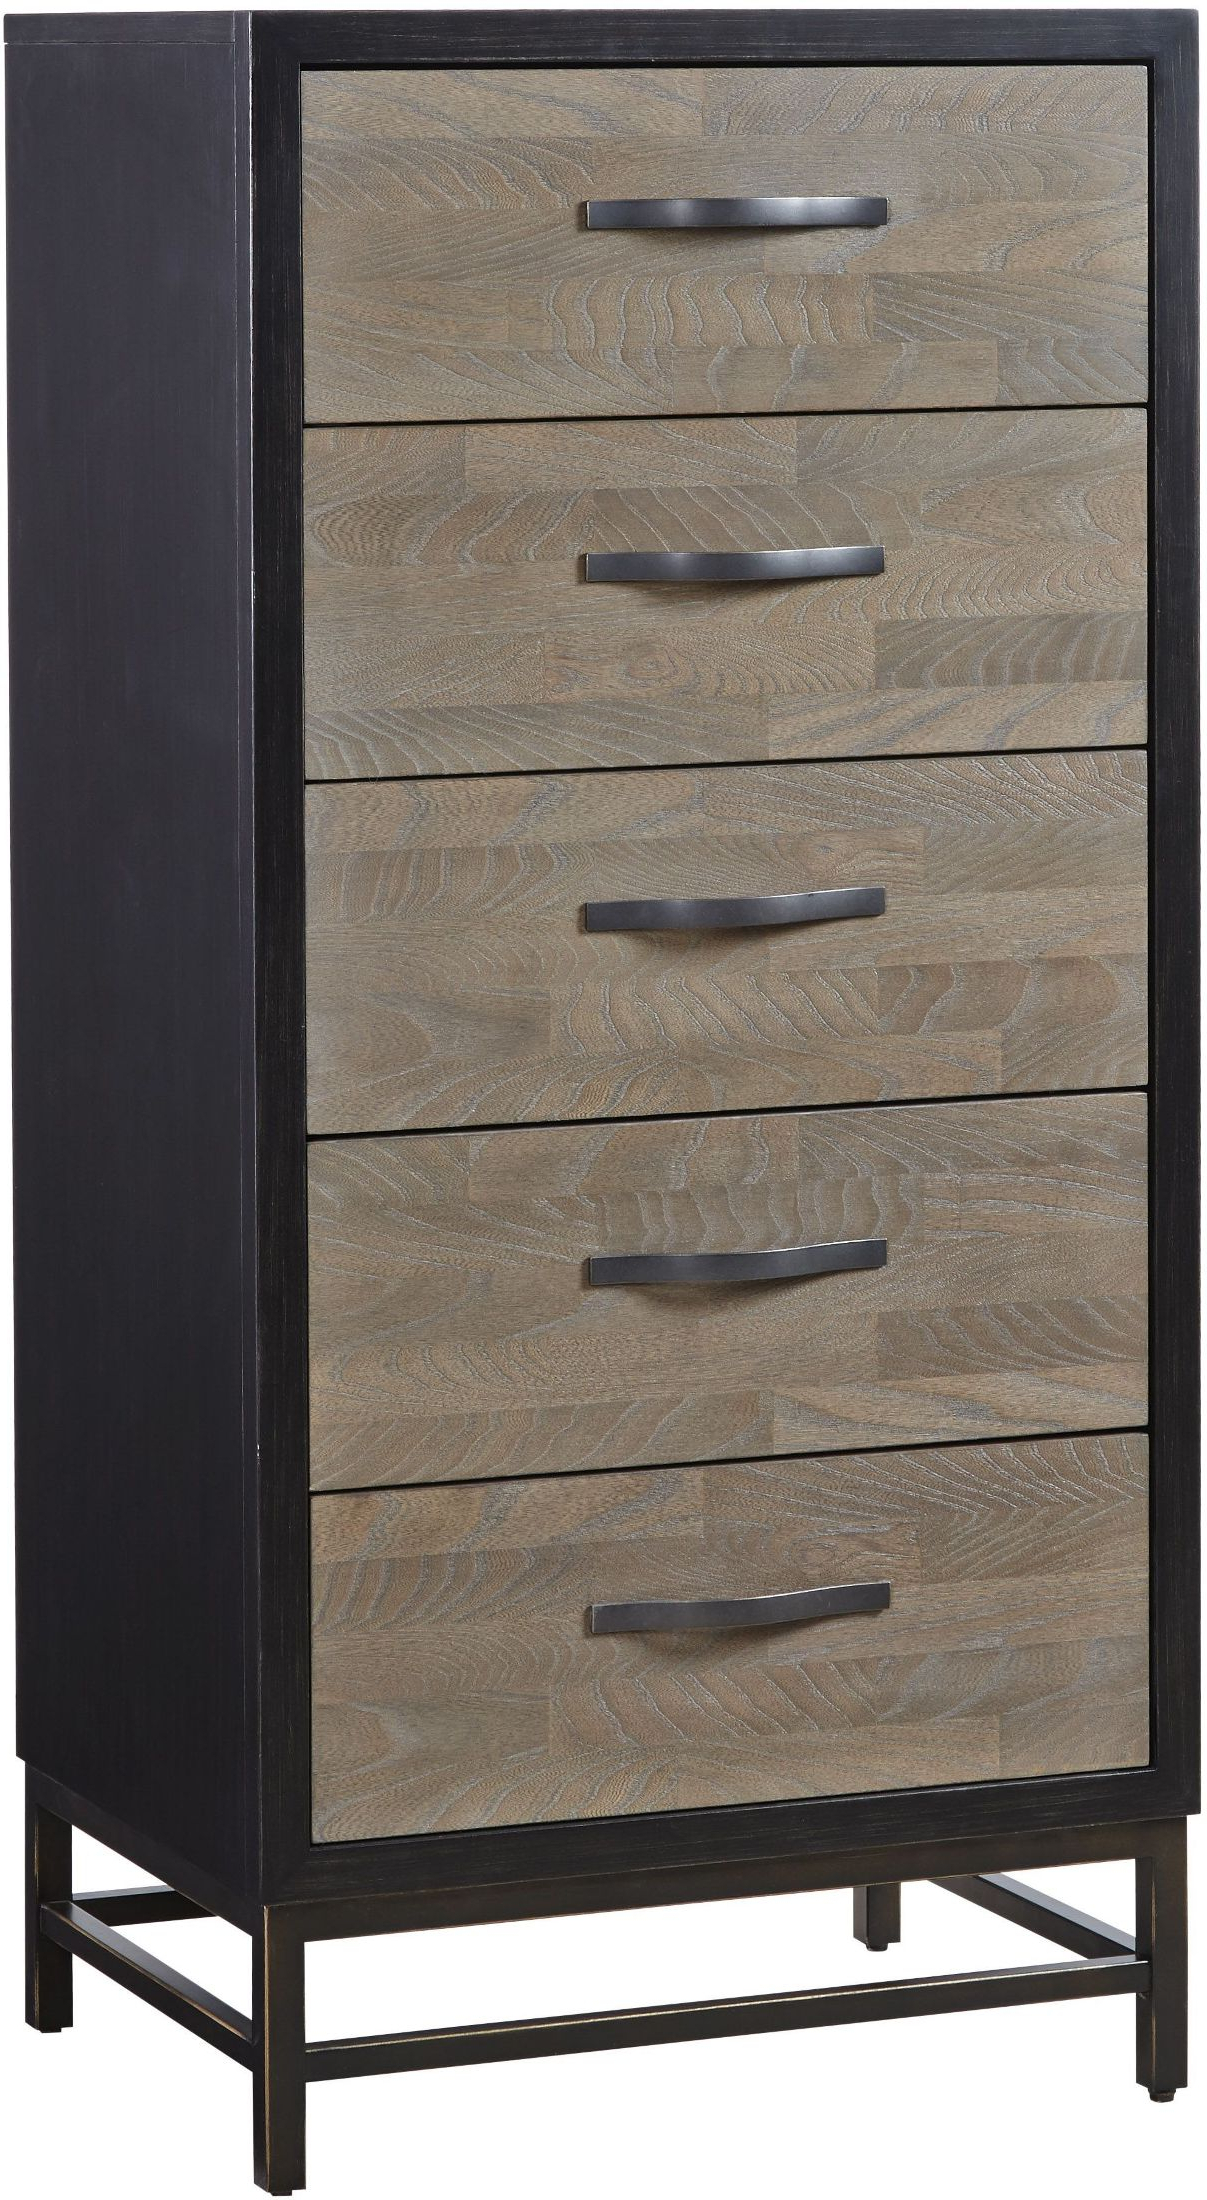 Preferred Mandara 3 Drawer 2 Door Sideboards Inside Curated Chalkboard Narrow Chest (View 18 of 20)